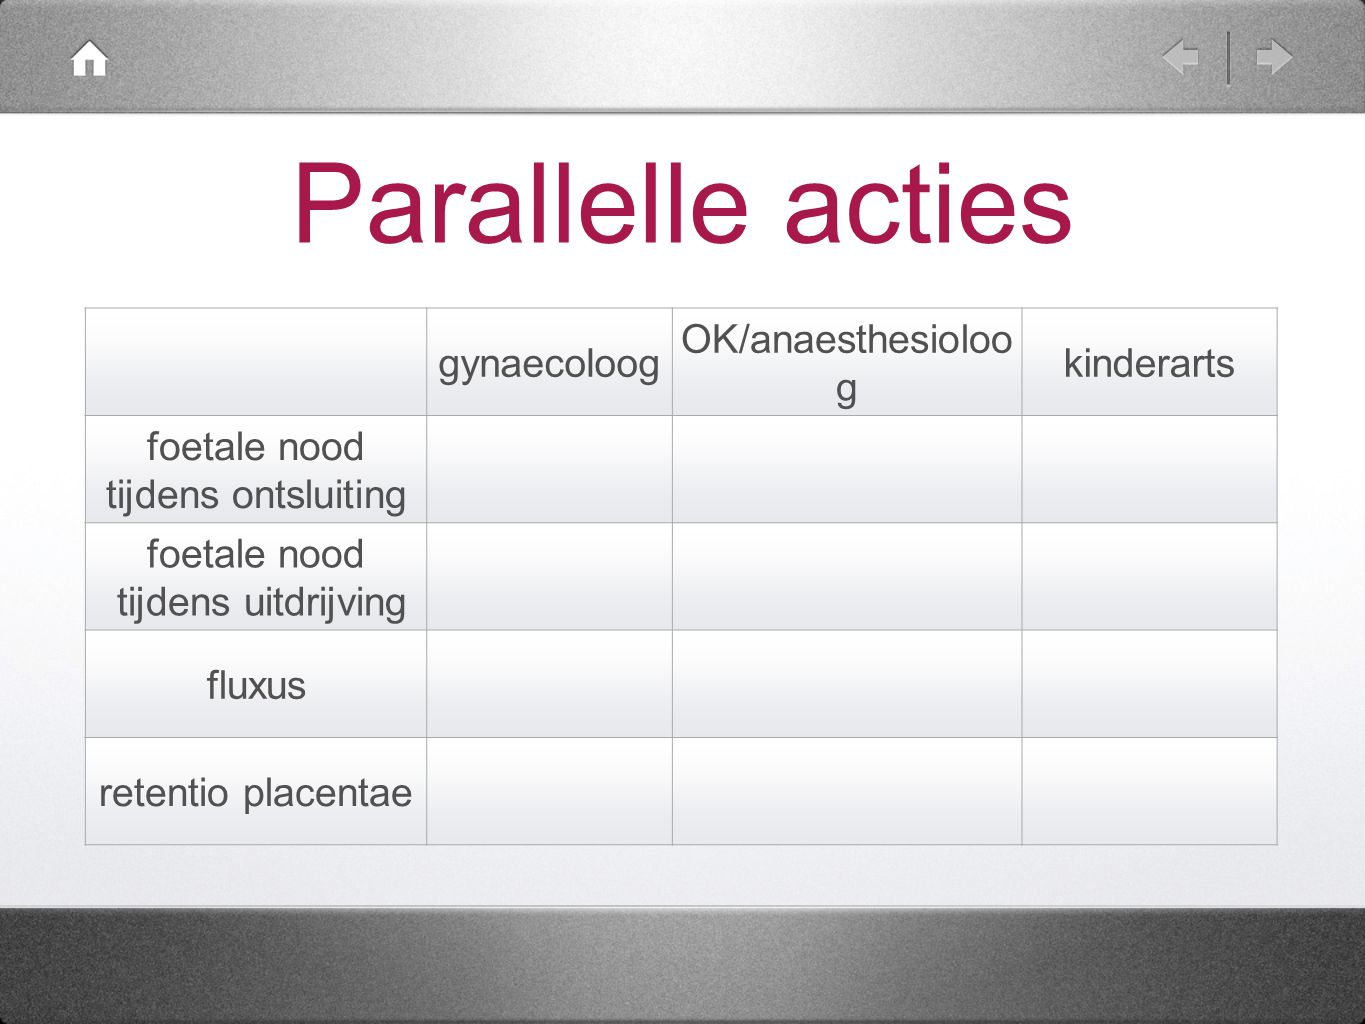 Parallelle acties gynaecoloog OK/anaesthesioloog kinderarts